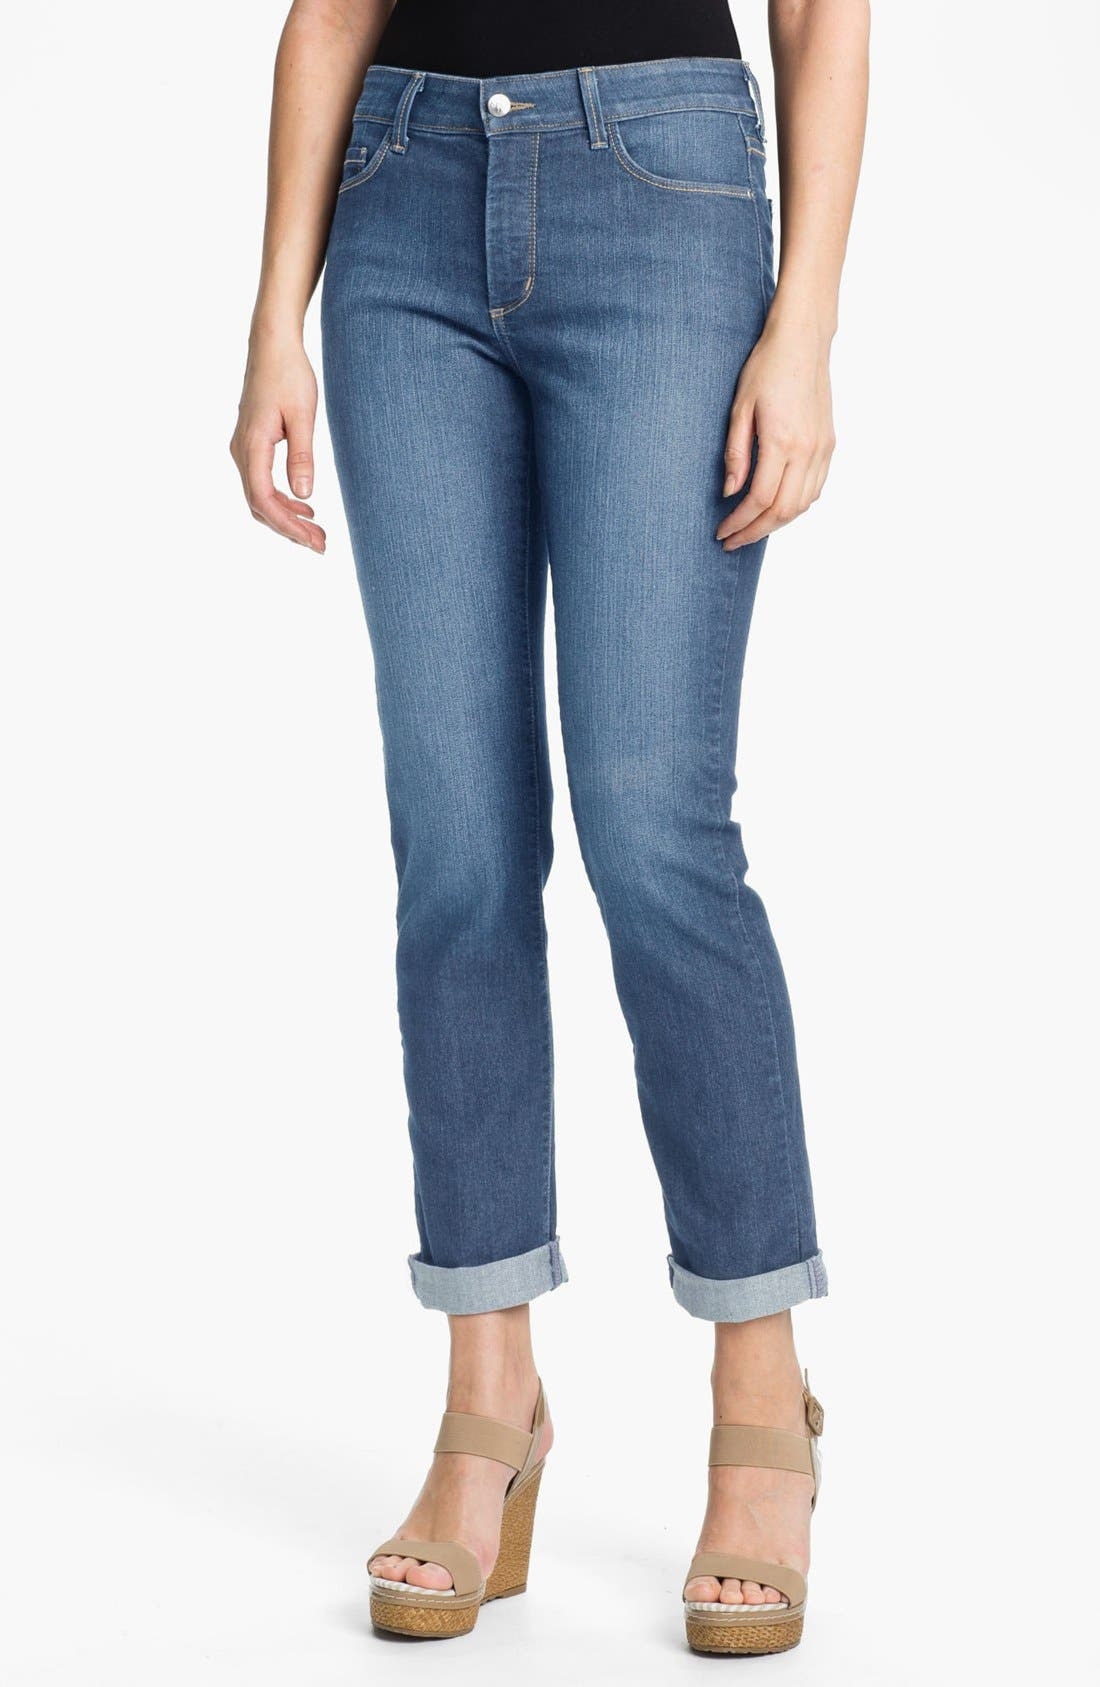 Alternate Image 1 Selected - NYDJ 'Tanya' Stretch Boyfriend Jeans (Modesto) (Plus Size)